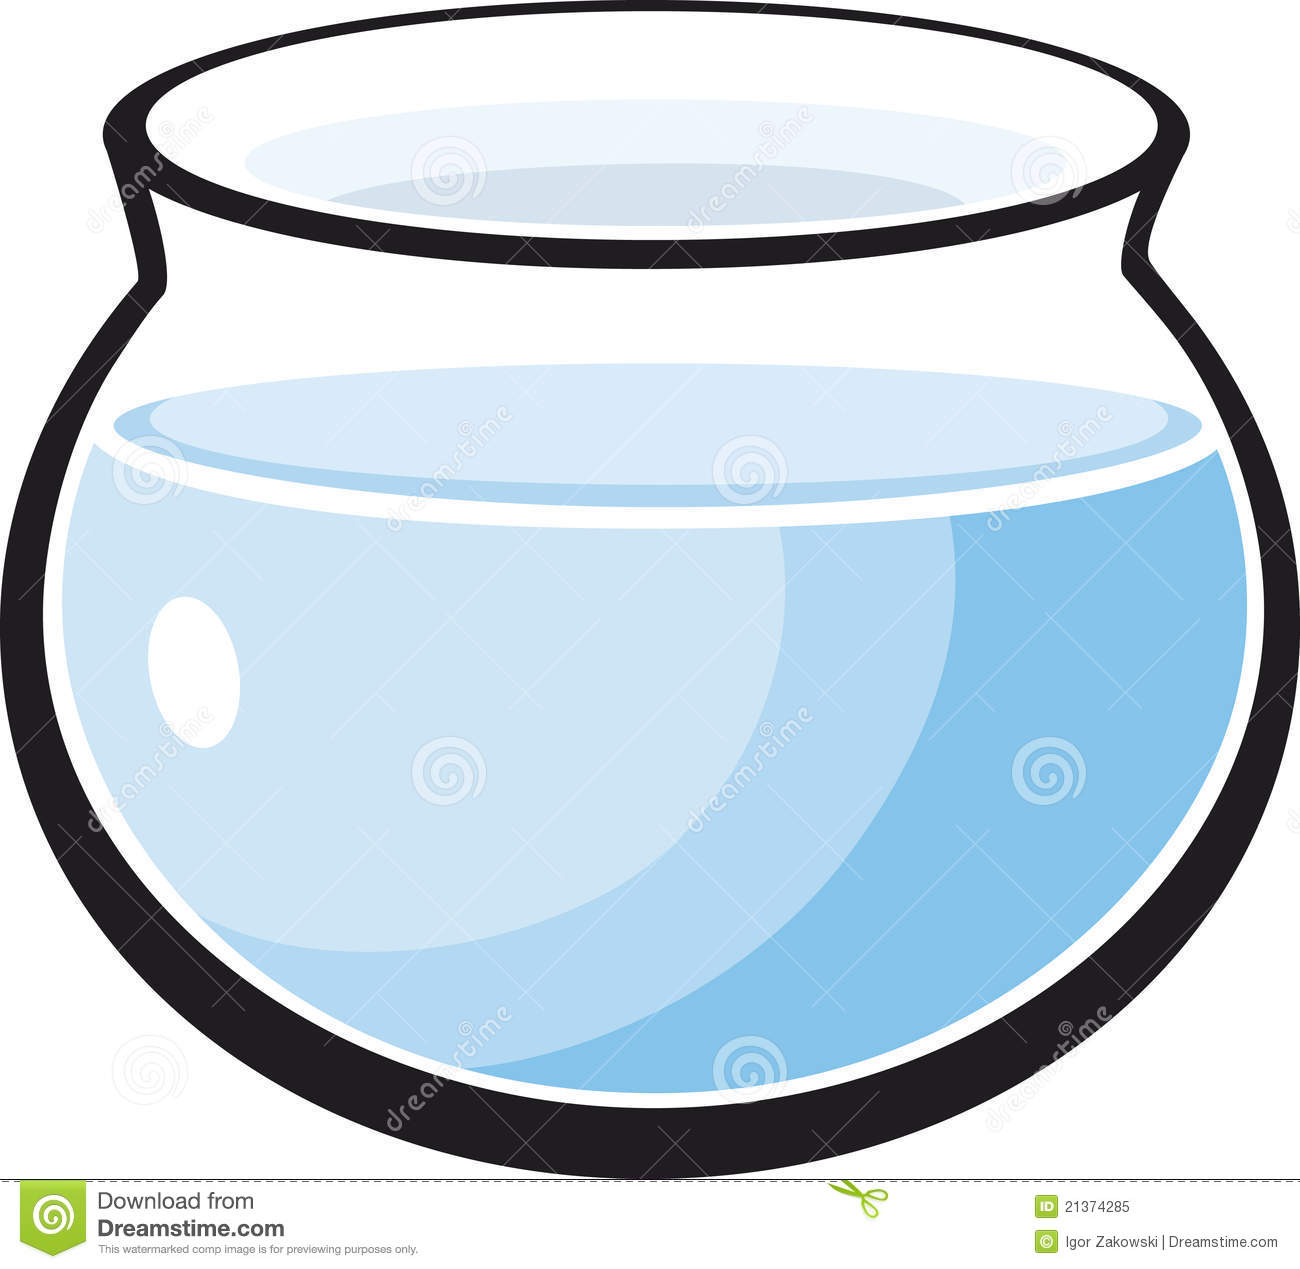 For pages free download. Fishbowl clipart fish house